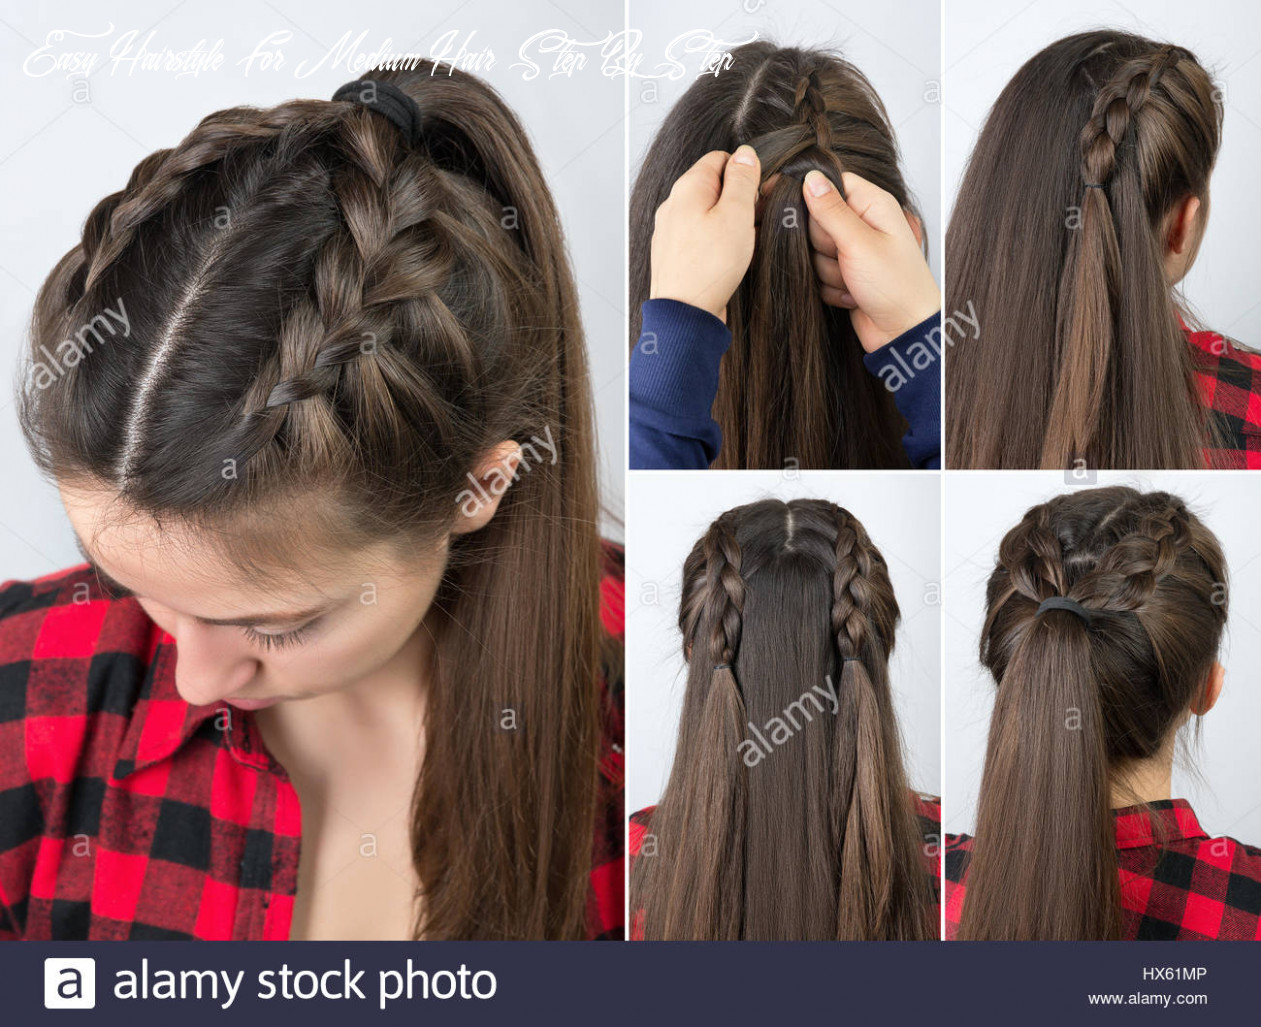 Simple braided hairstyle tutorial step by step easy hairstyle for